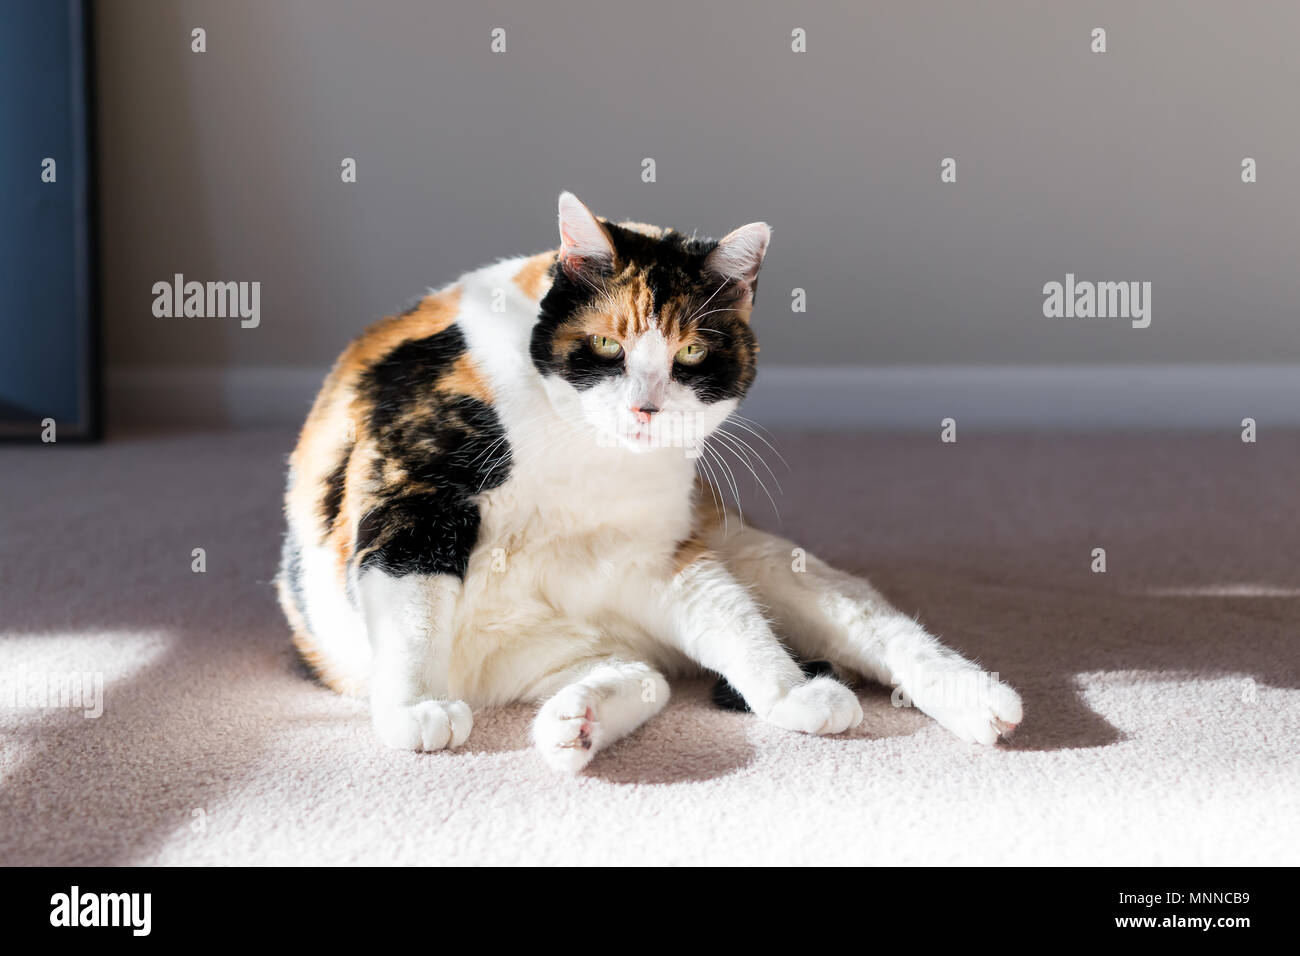 Closeup of calico cat on living room bedroom room carpet floor grooming distracted with soft sunlight, looking angry - Stock Image